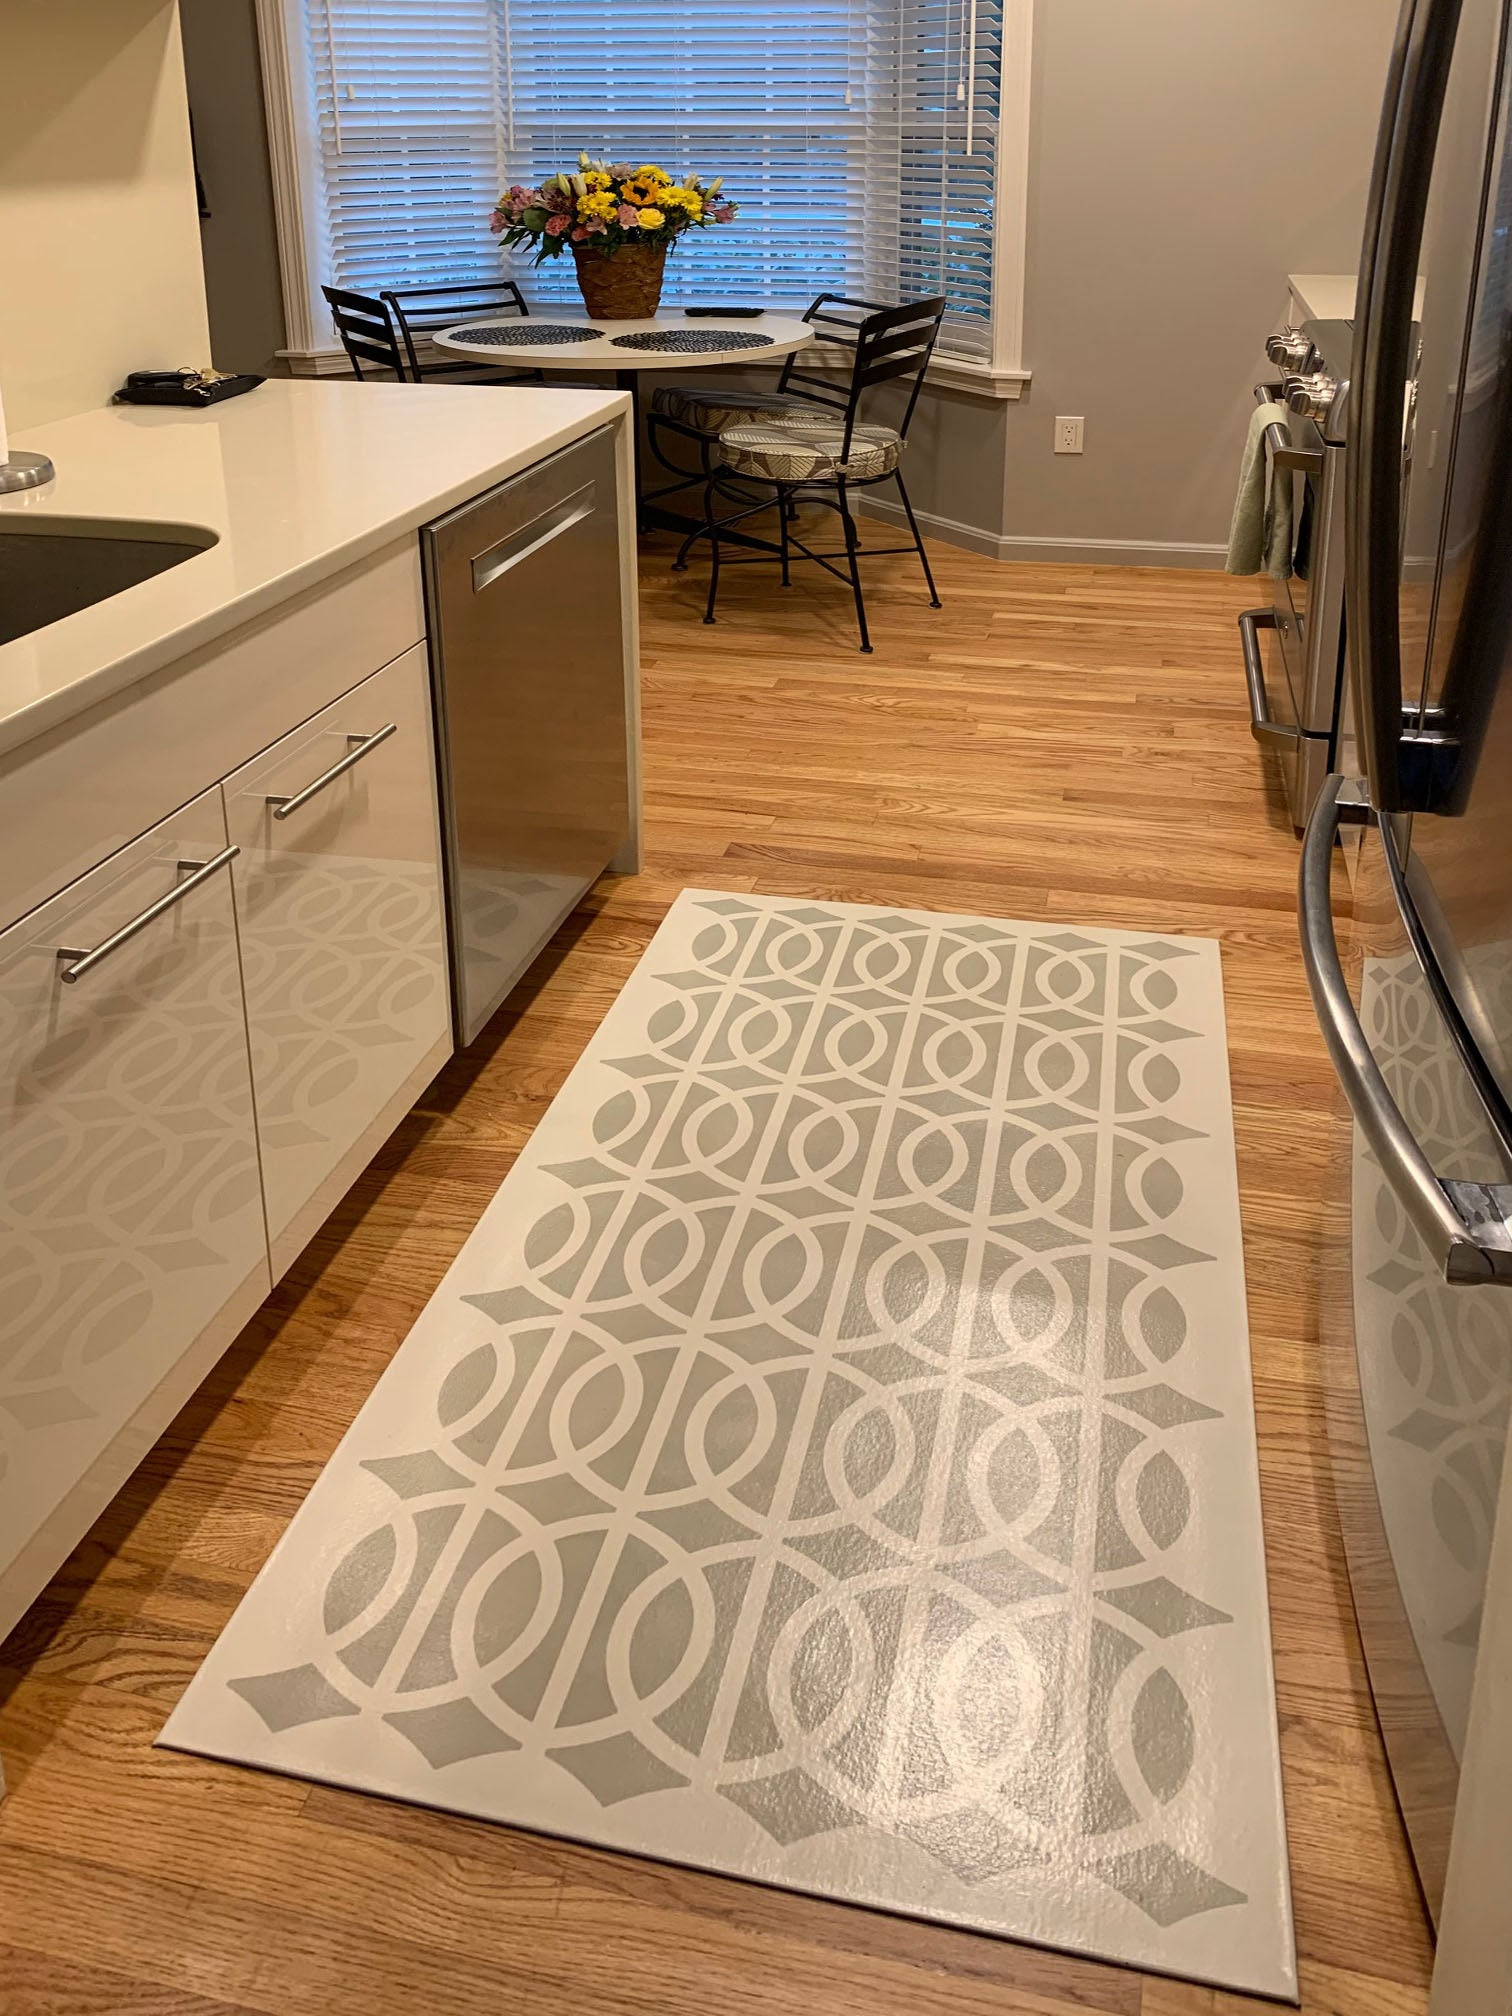 Another in-situ image of the Circle & Line floorcloth.